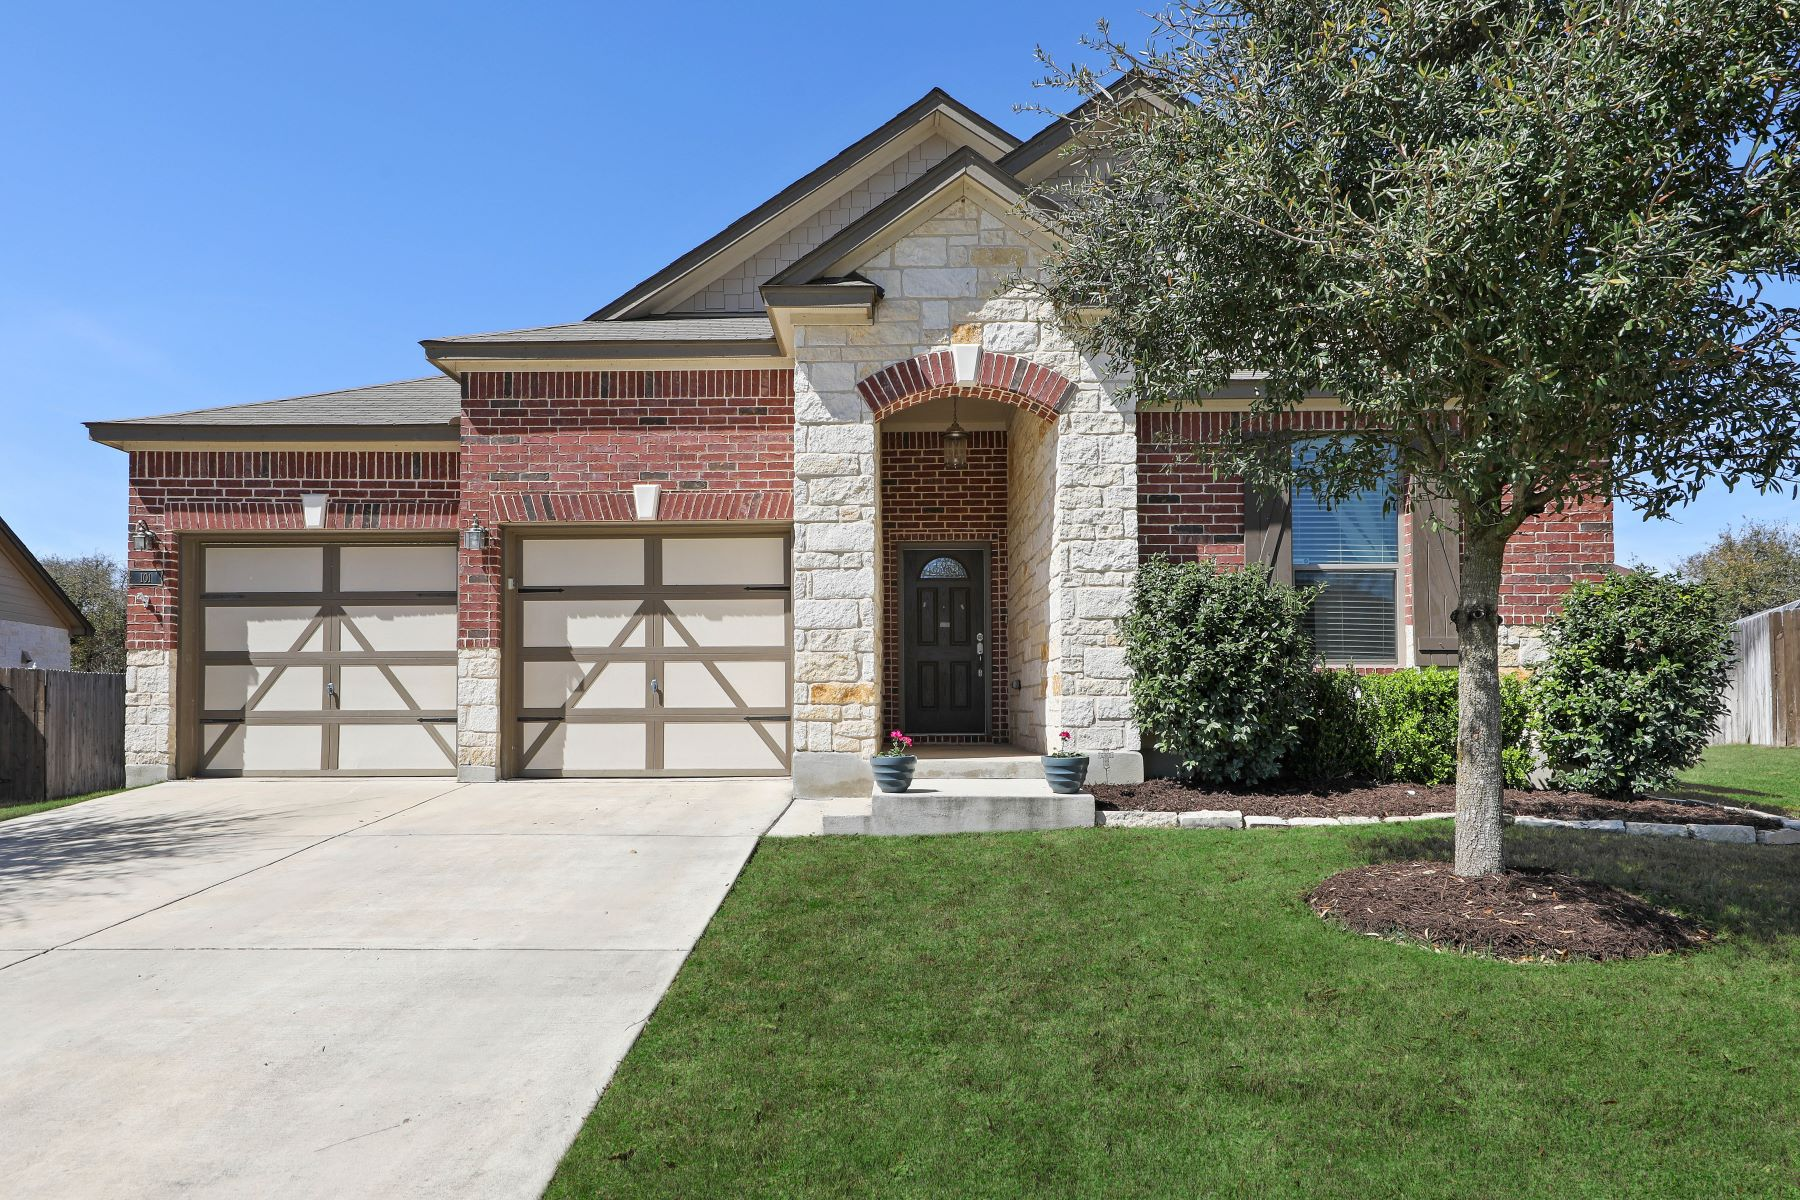 Single Family Home for Sale at Charming Home on Over-Sized Lot 101 Waterfall Court Boerne, Texas 78006 United States